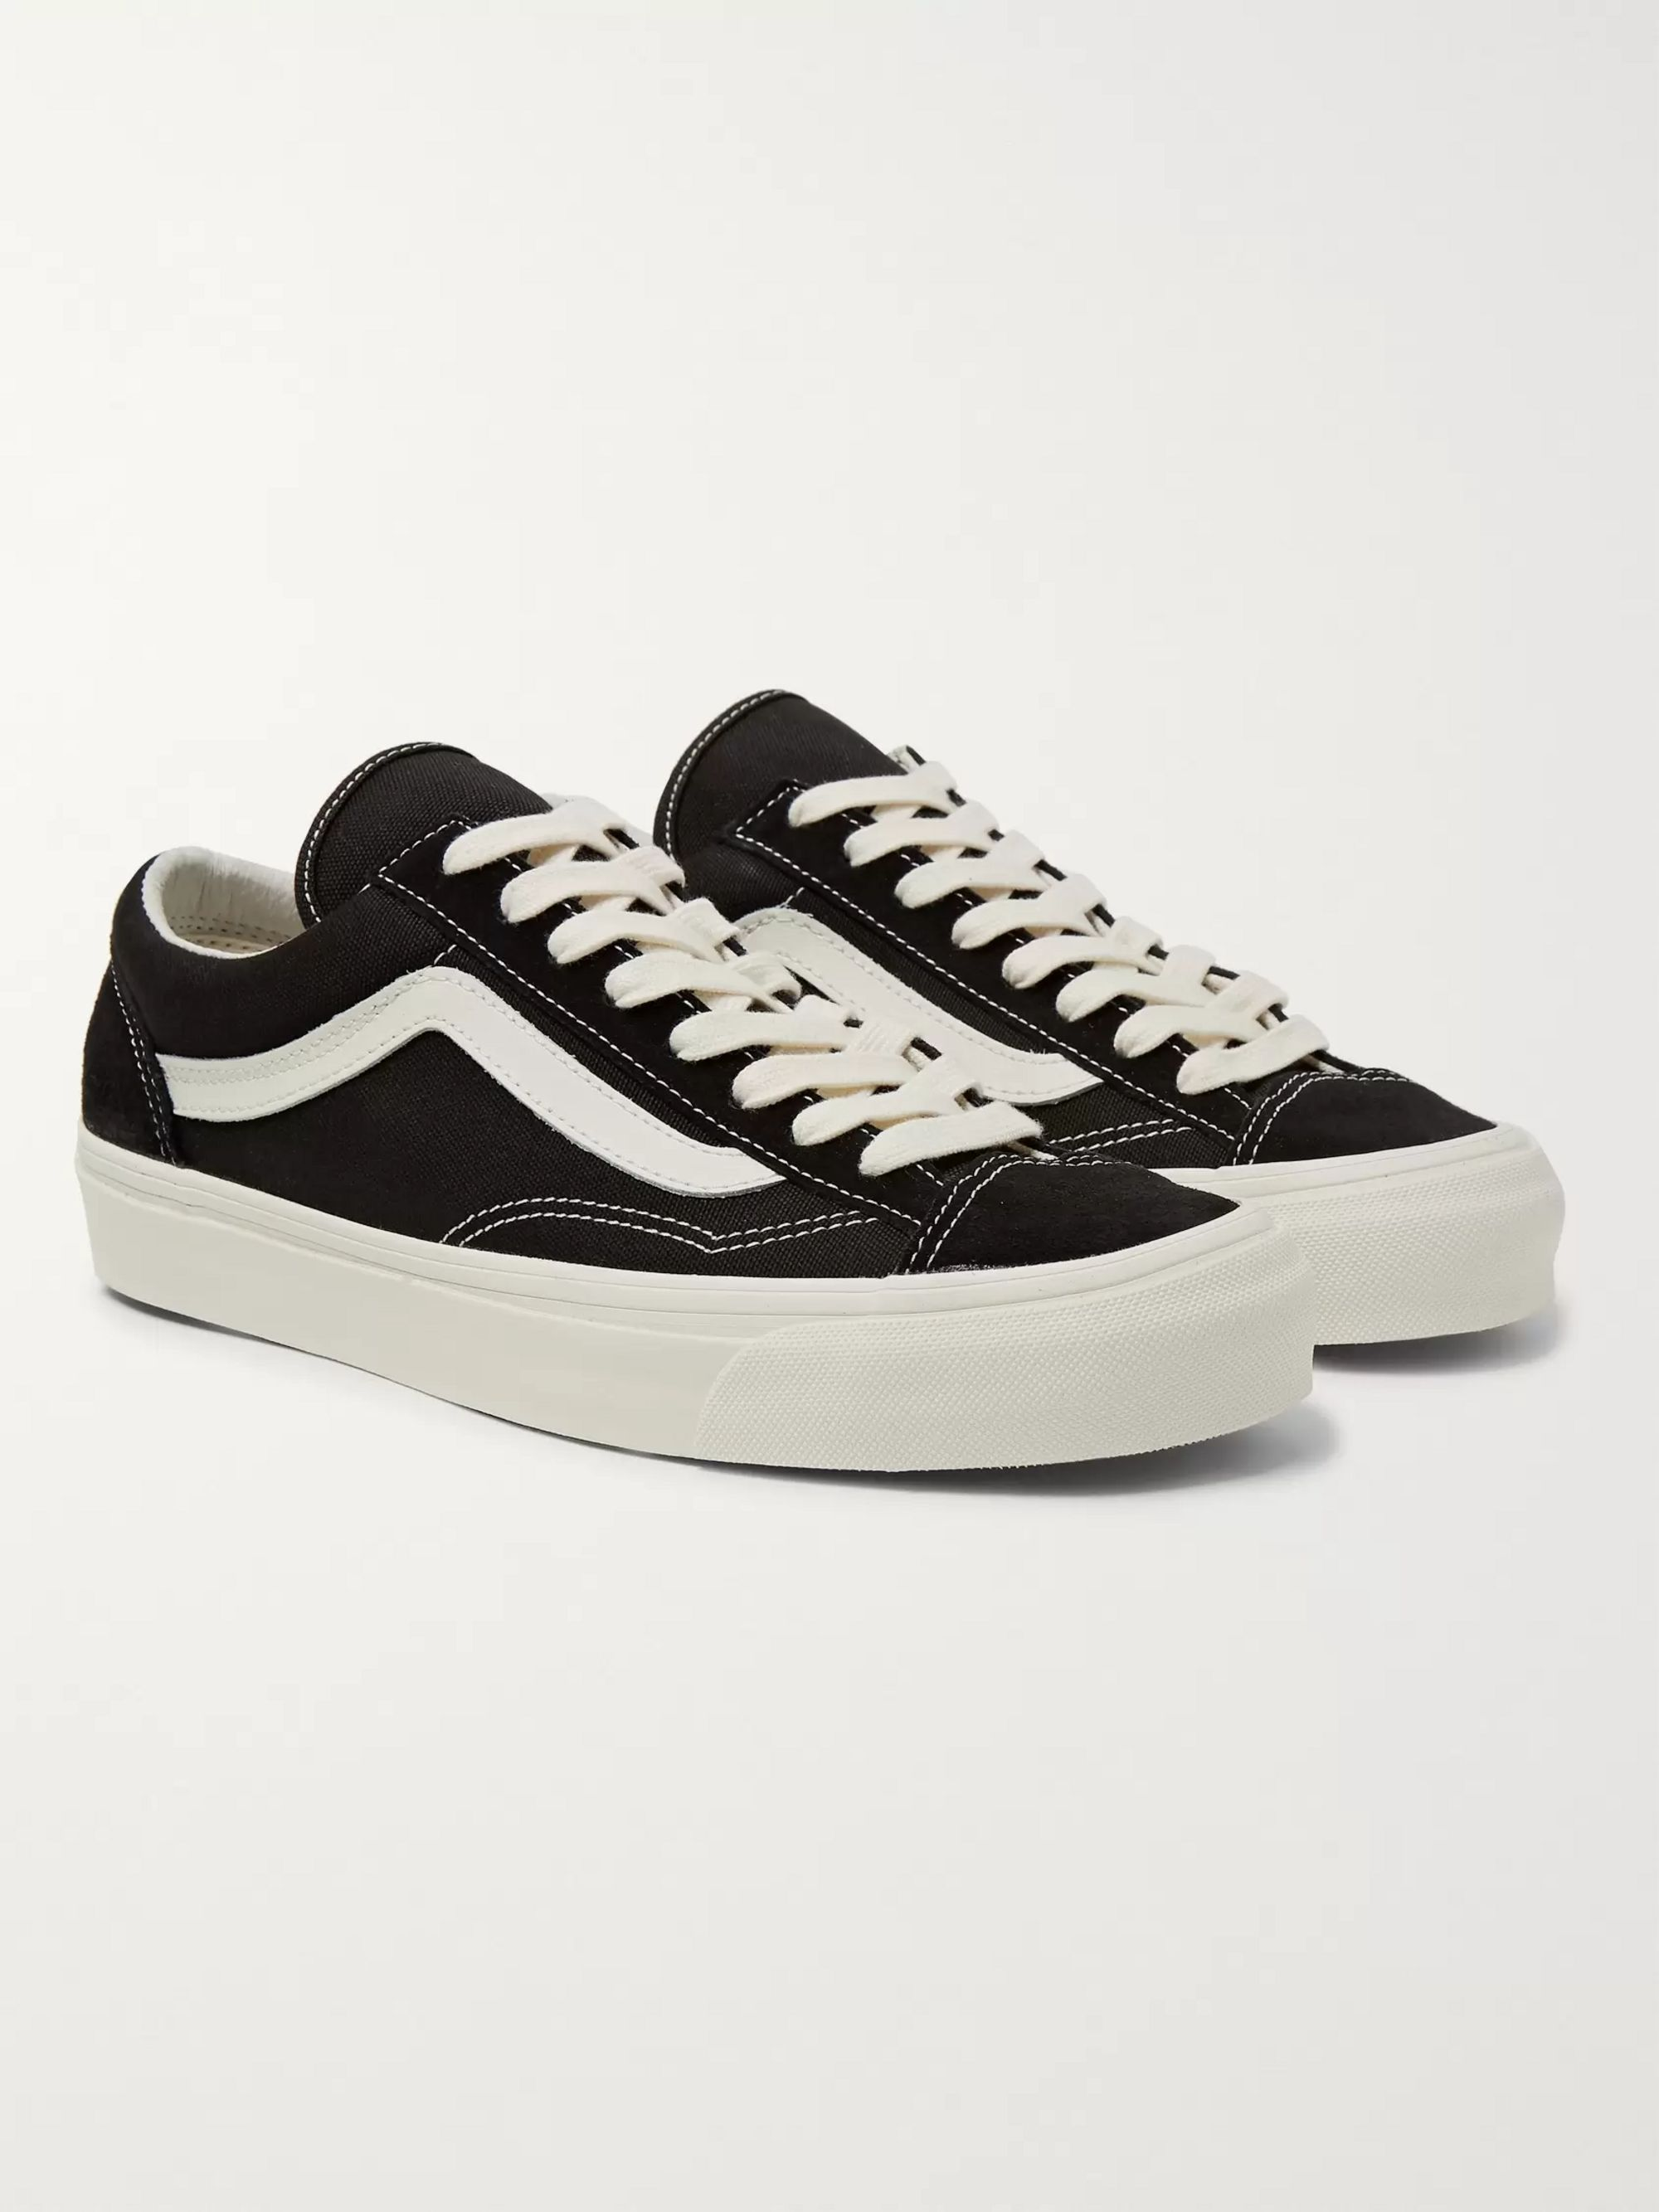 OG Old Skool LX Leather Trimmed Canvas and Suede Sneakers